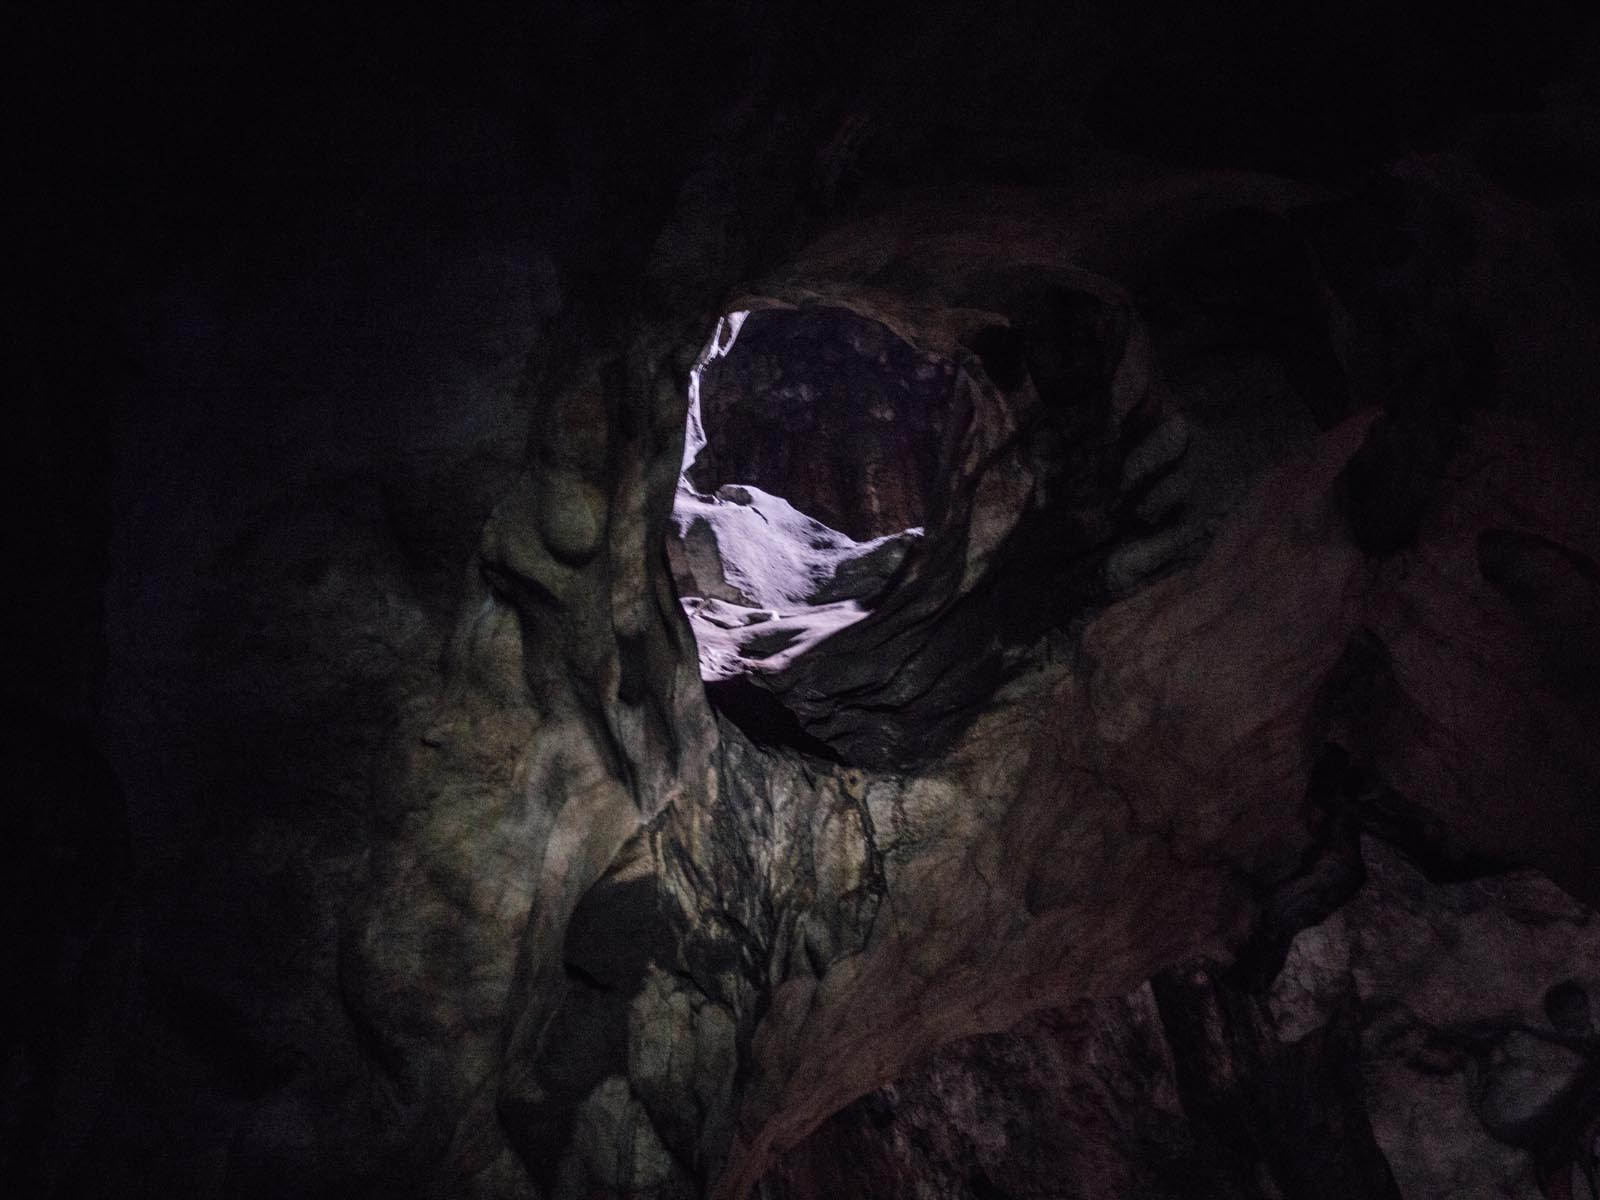 The slightest amount of daylight entering the cave at some places...